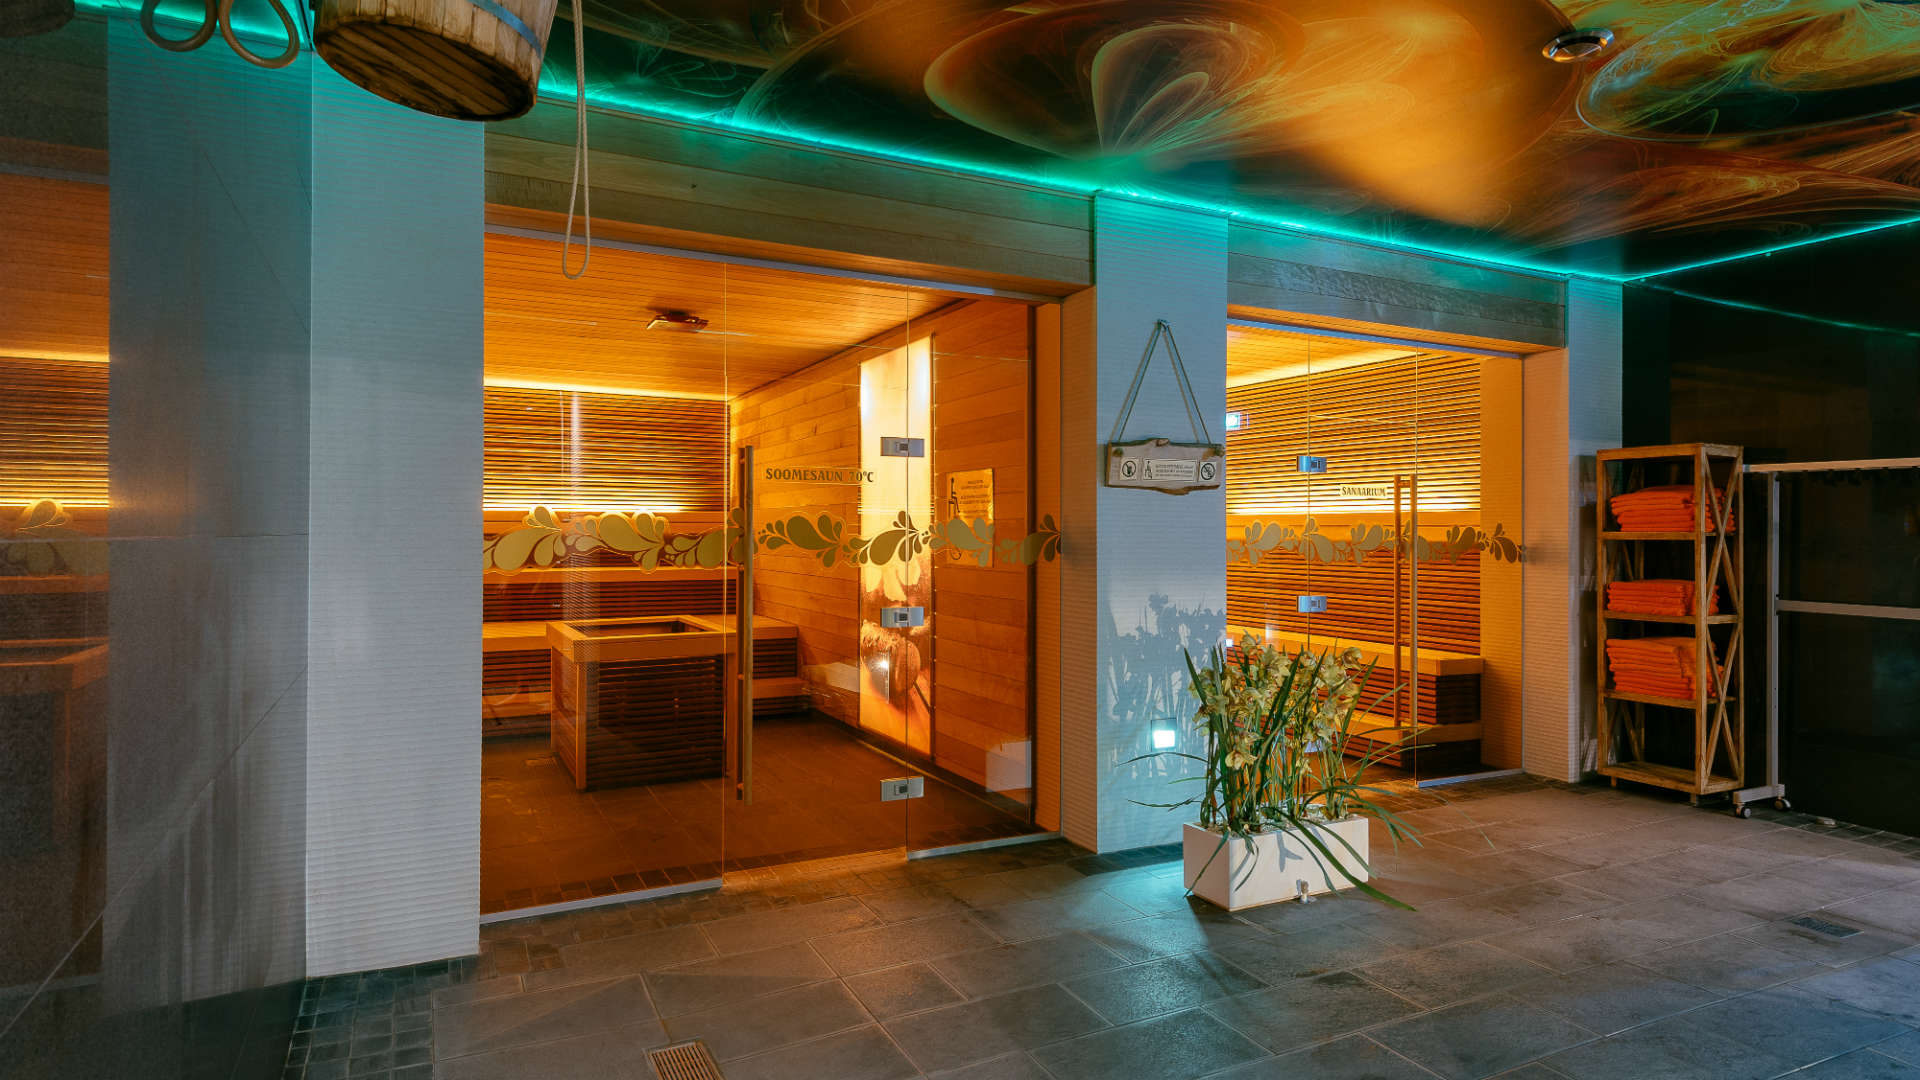 Toila SPA Hotell wellnesskeskus Orhidee